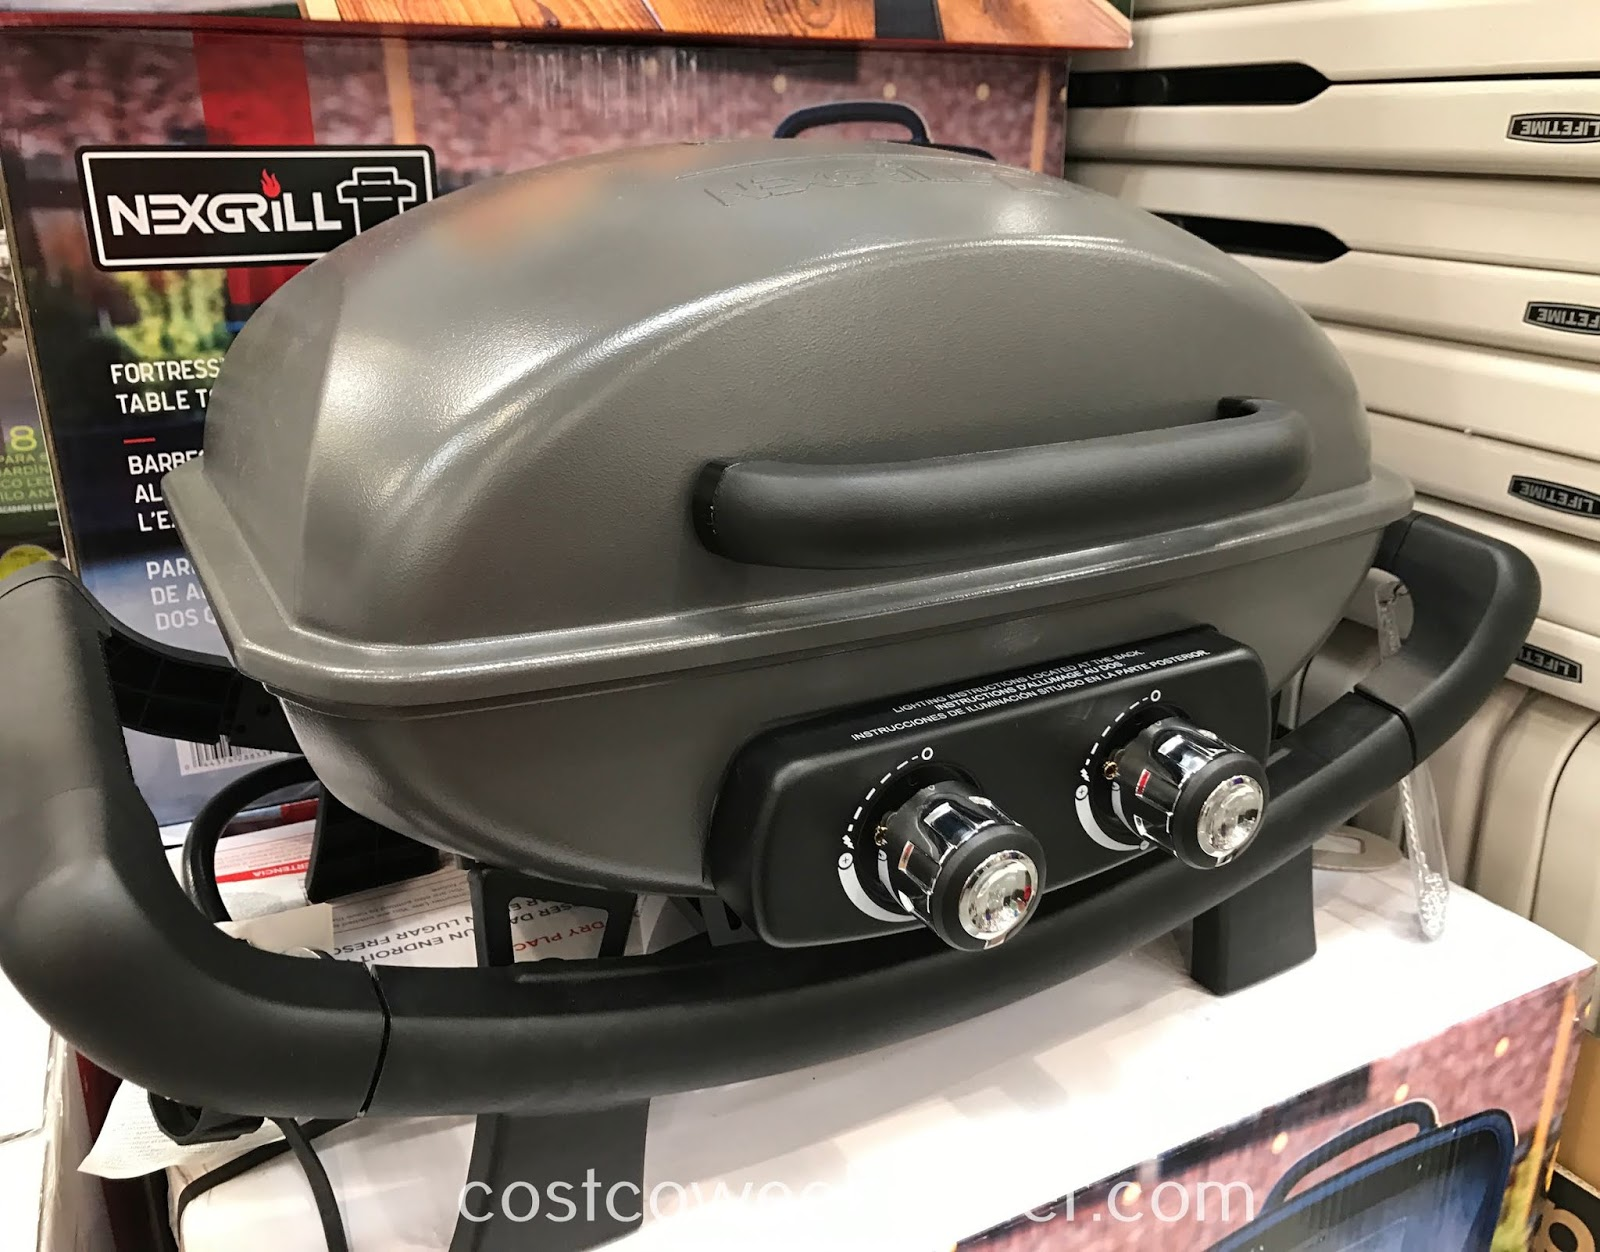 Have some barebecue on the Nexgrill Fortress 2 Burner Cast Aluminum Table Top Gas Grill